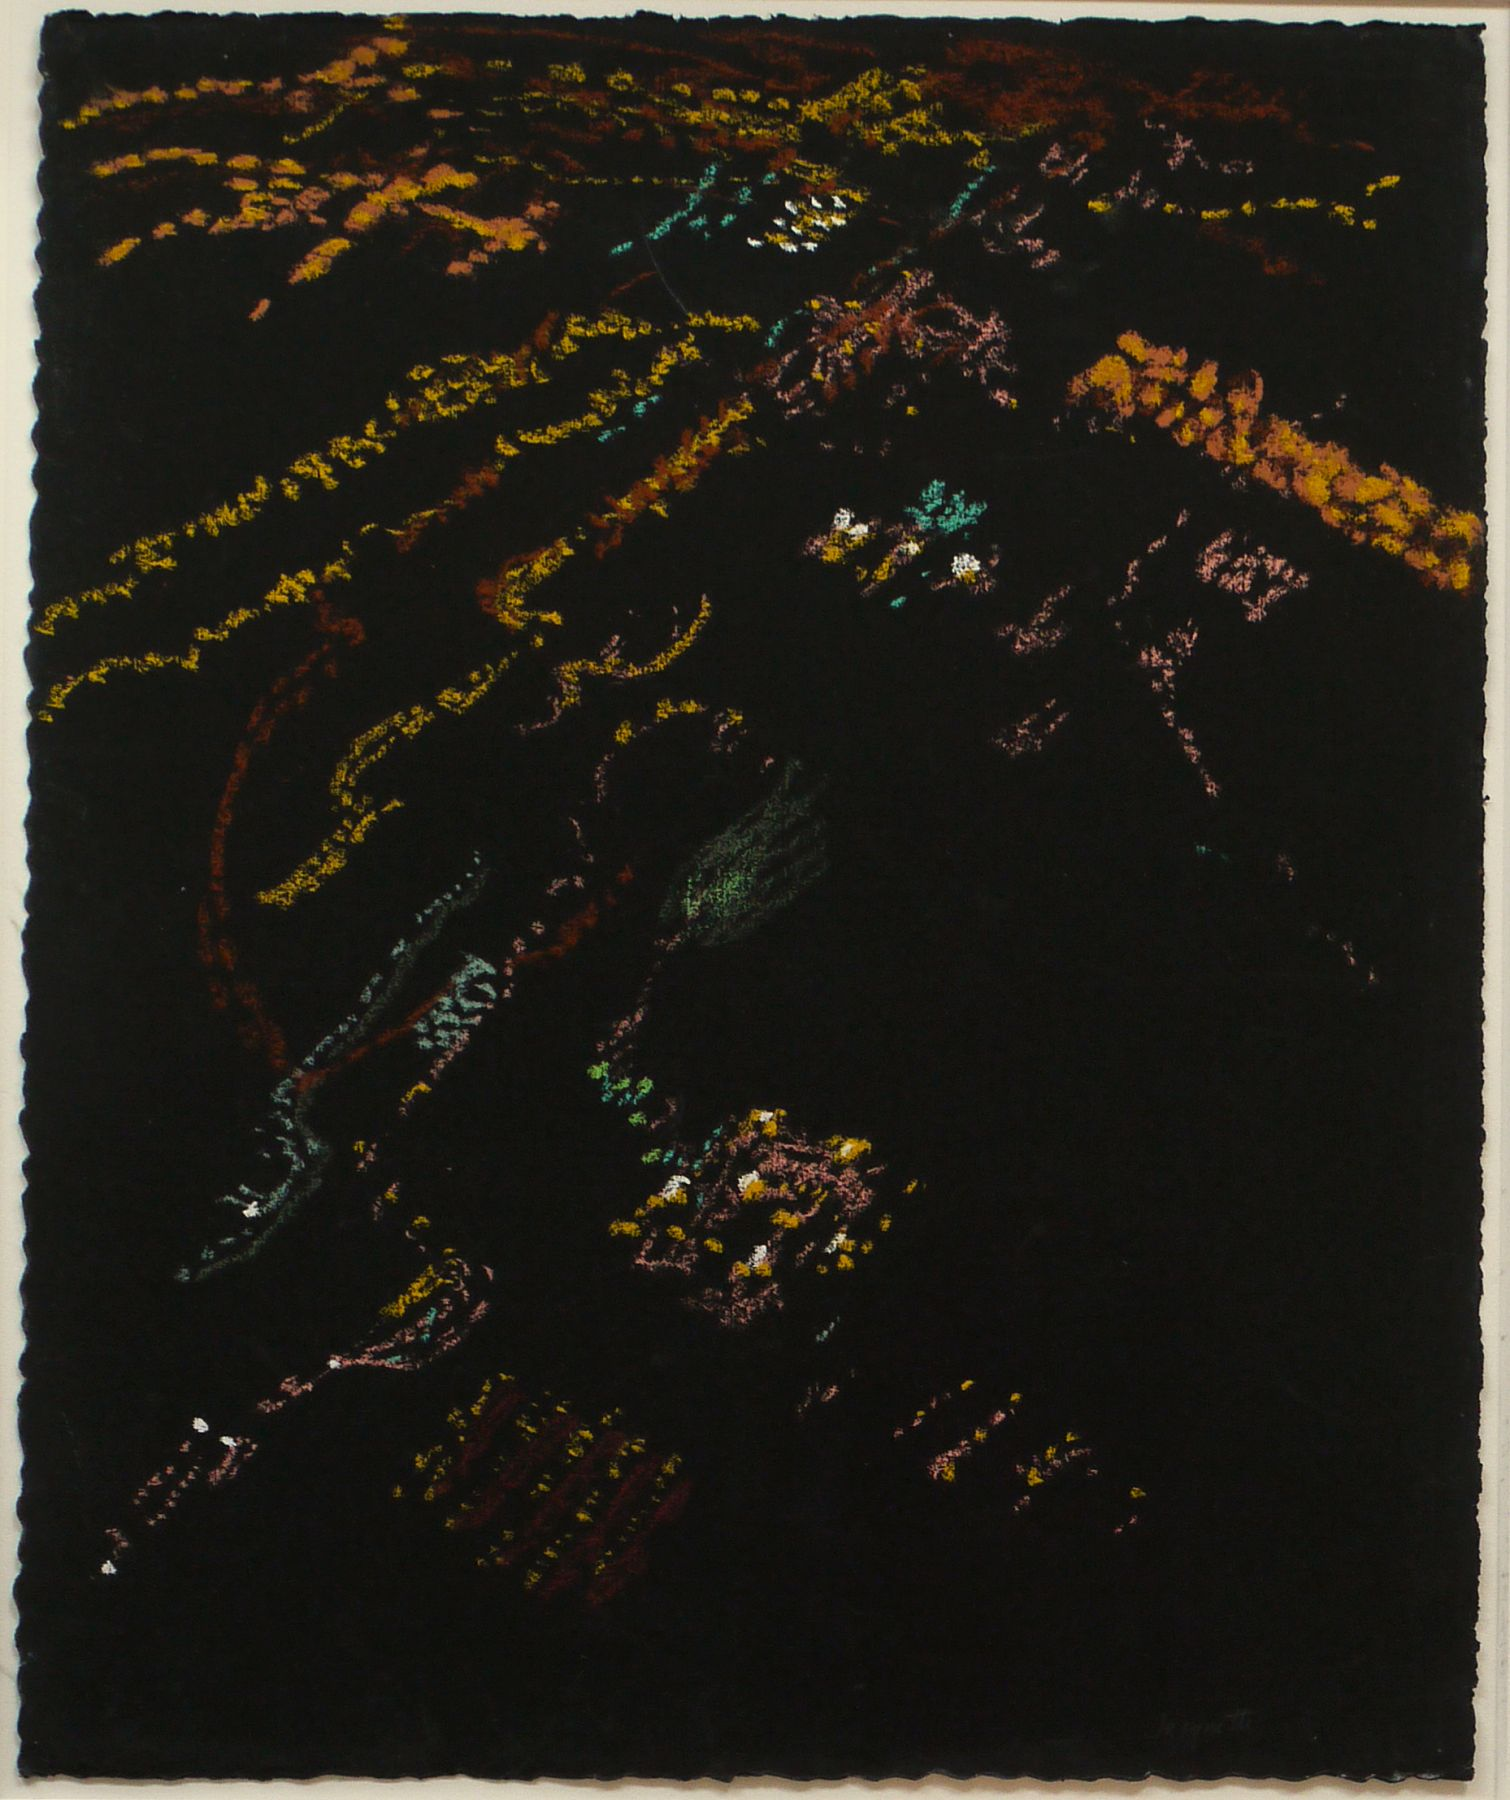 Night Lights, Reclining Plane I, 2007, Pastel on paper